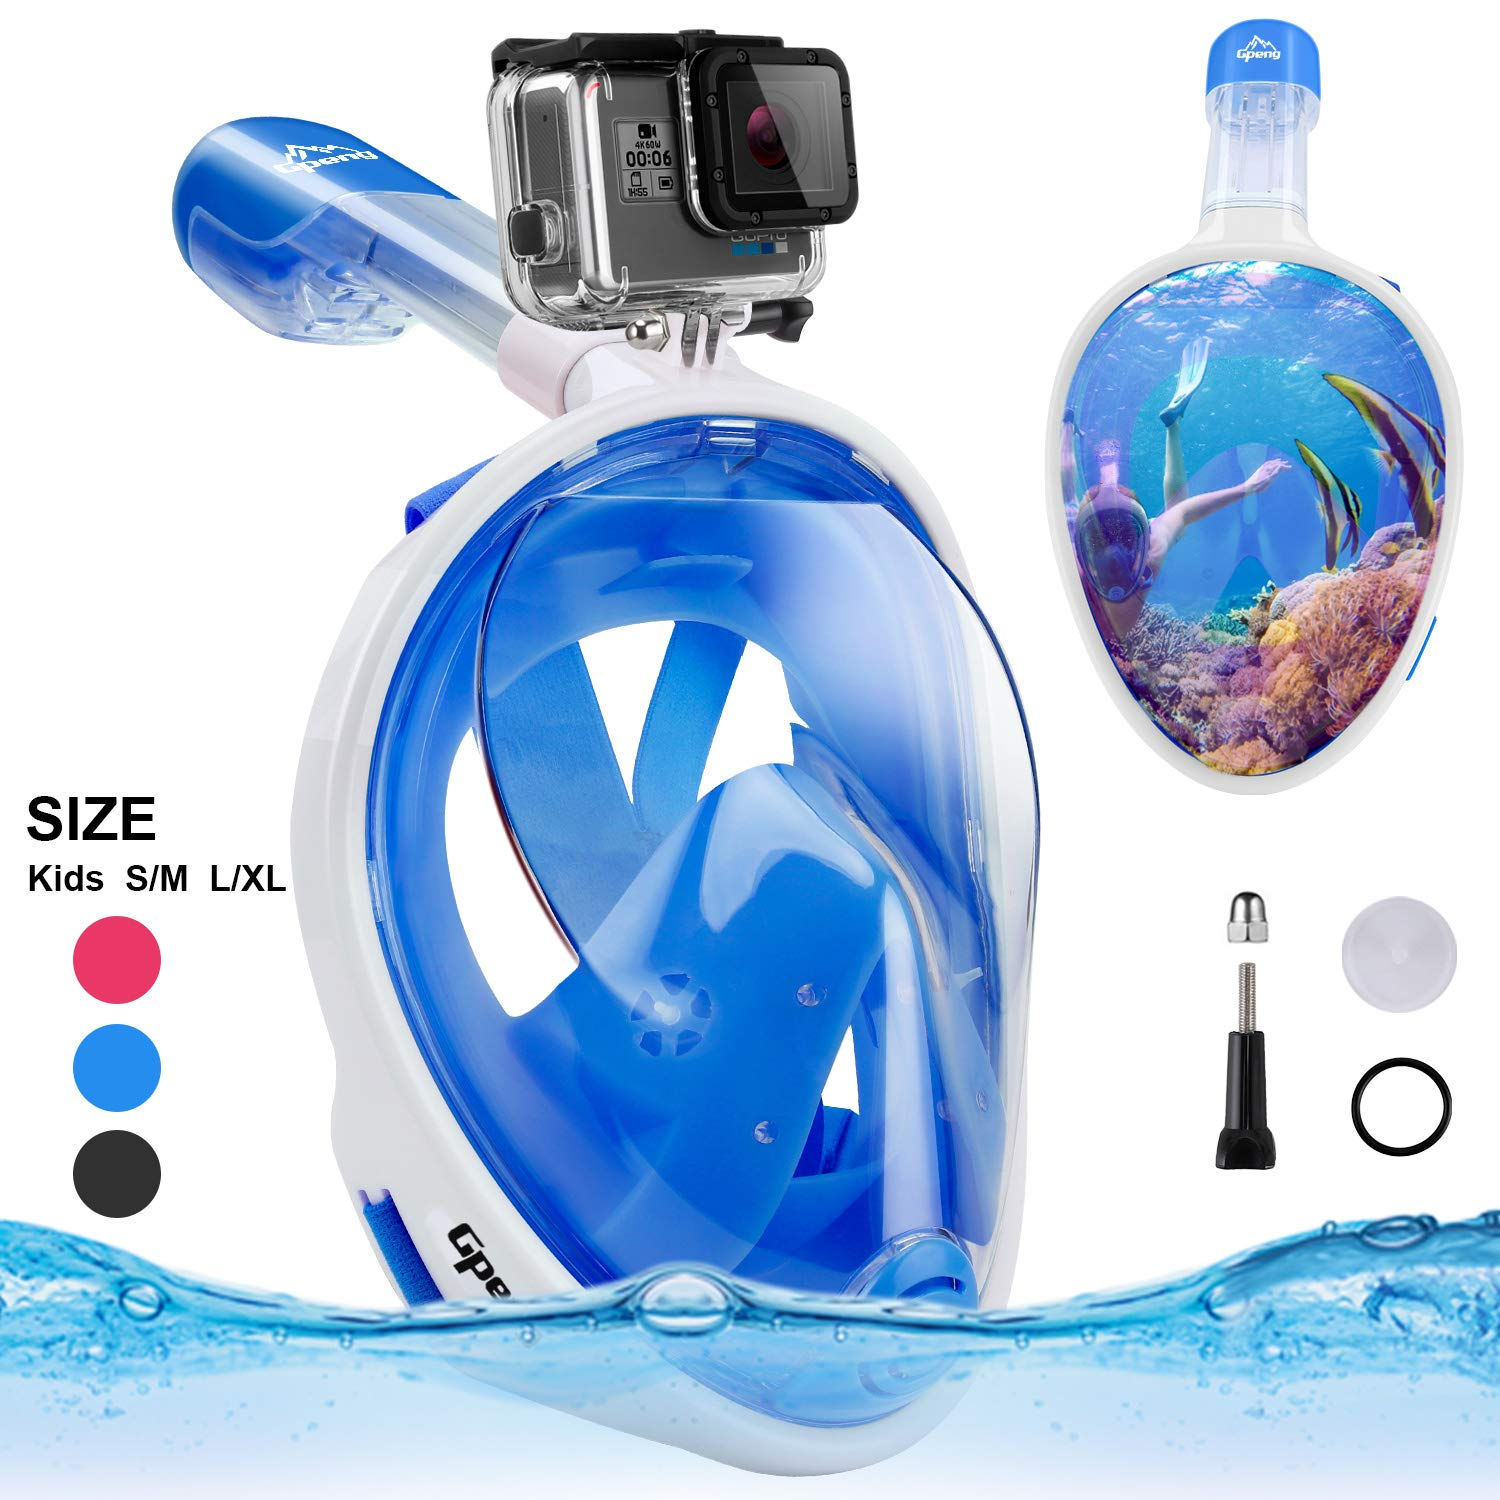 Gpeng Full Face Snorkel Mask-Advanced Safety Breathing System Allows You to Breathe More Fresh Air While Snorkeling,180 Panoramic Anti-Fog Anti-Leak Foldable Snorkel Mask (Blue_White,L/XL) by Gpeng